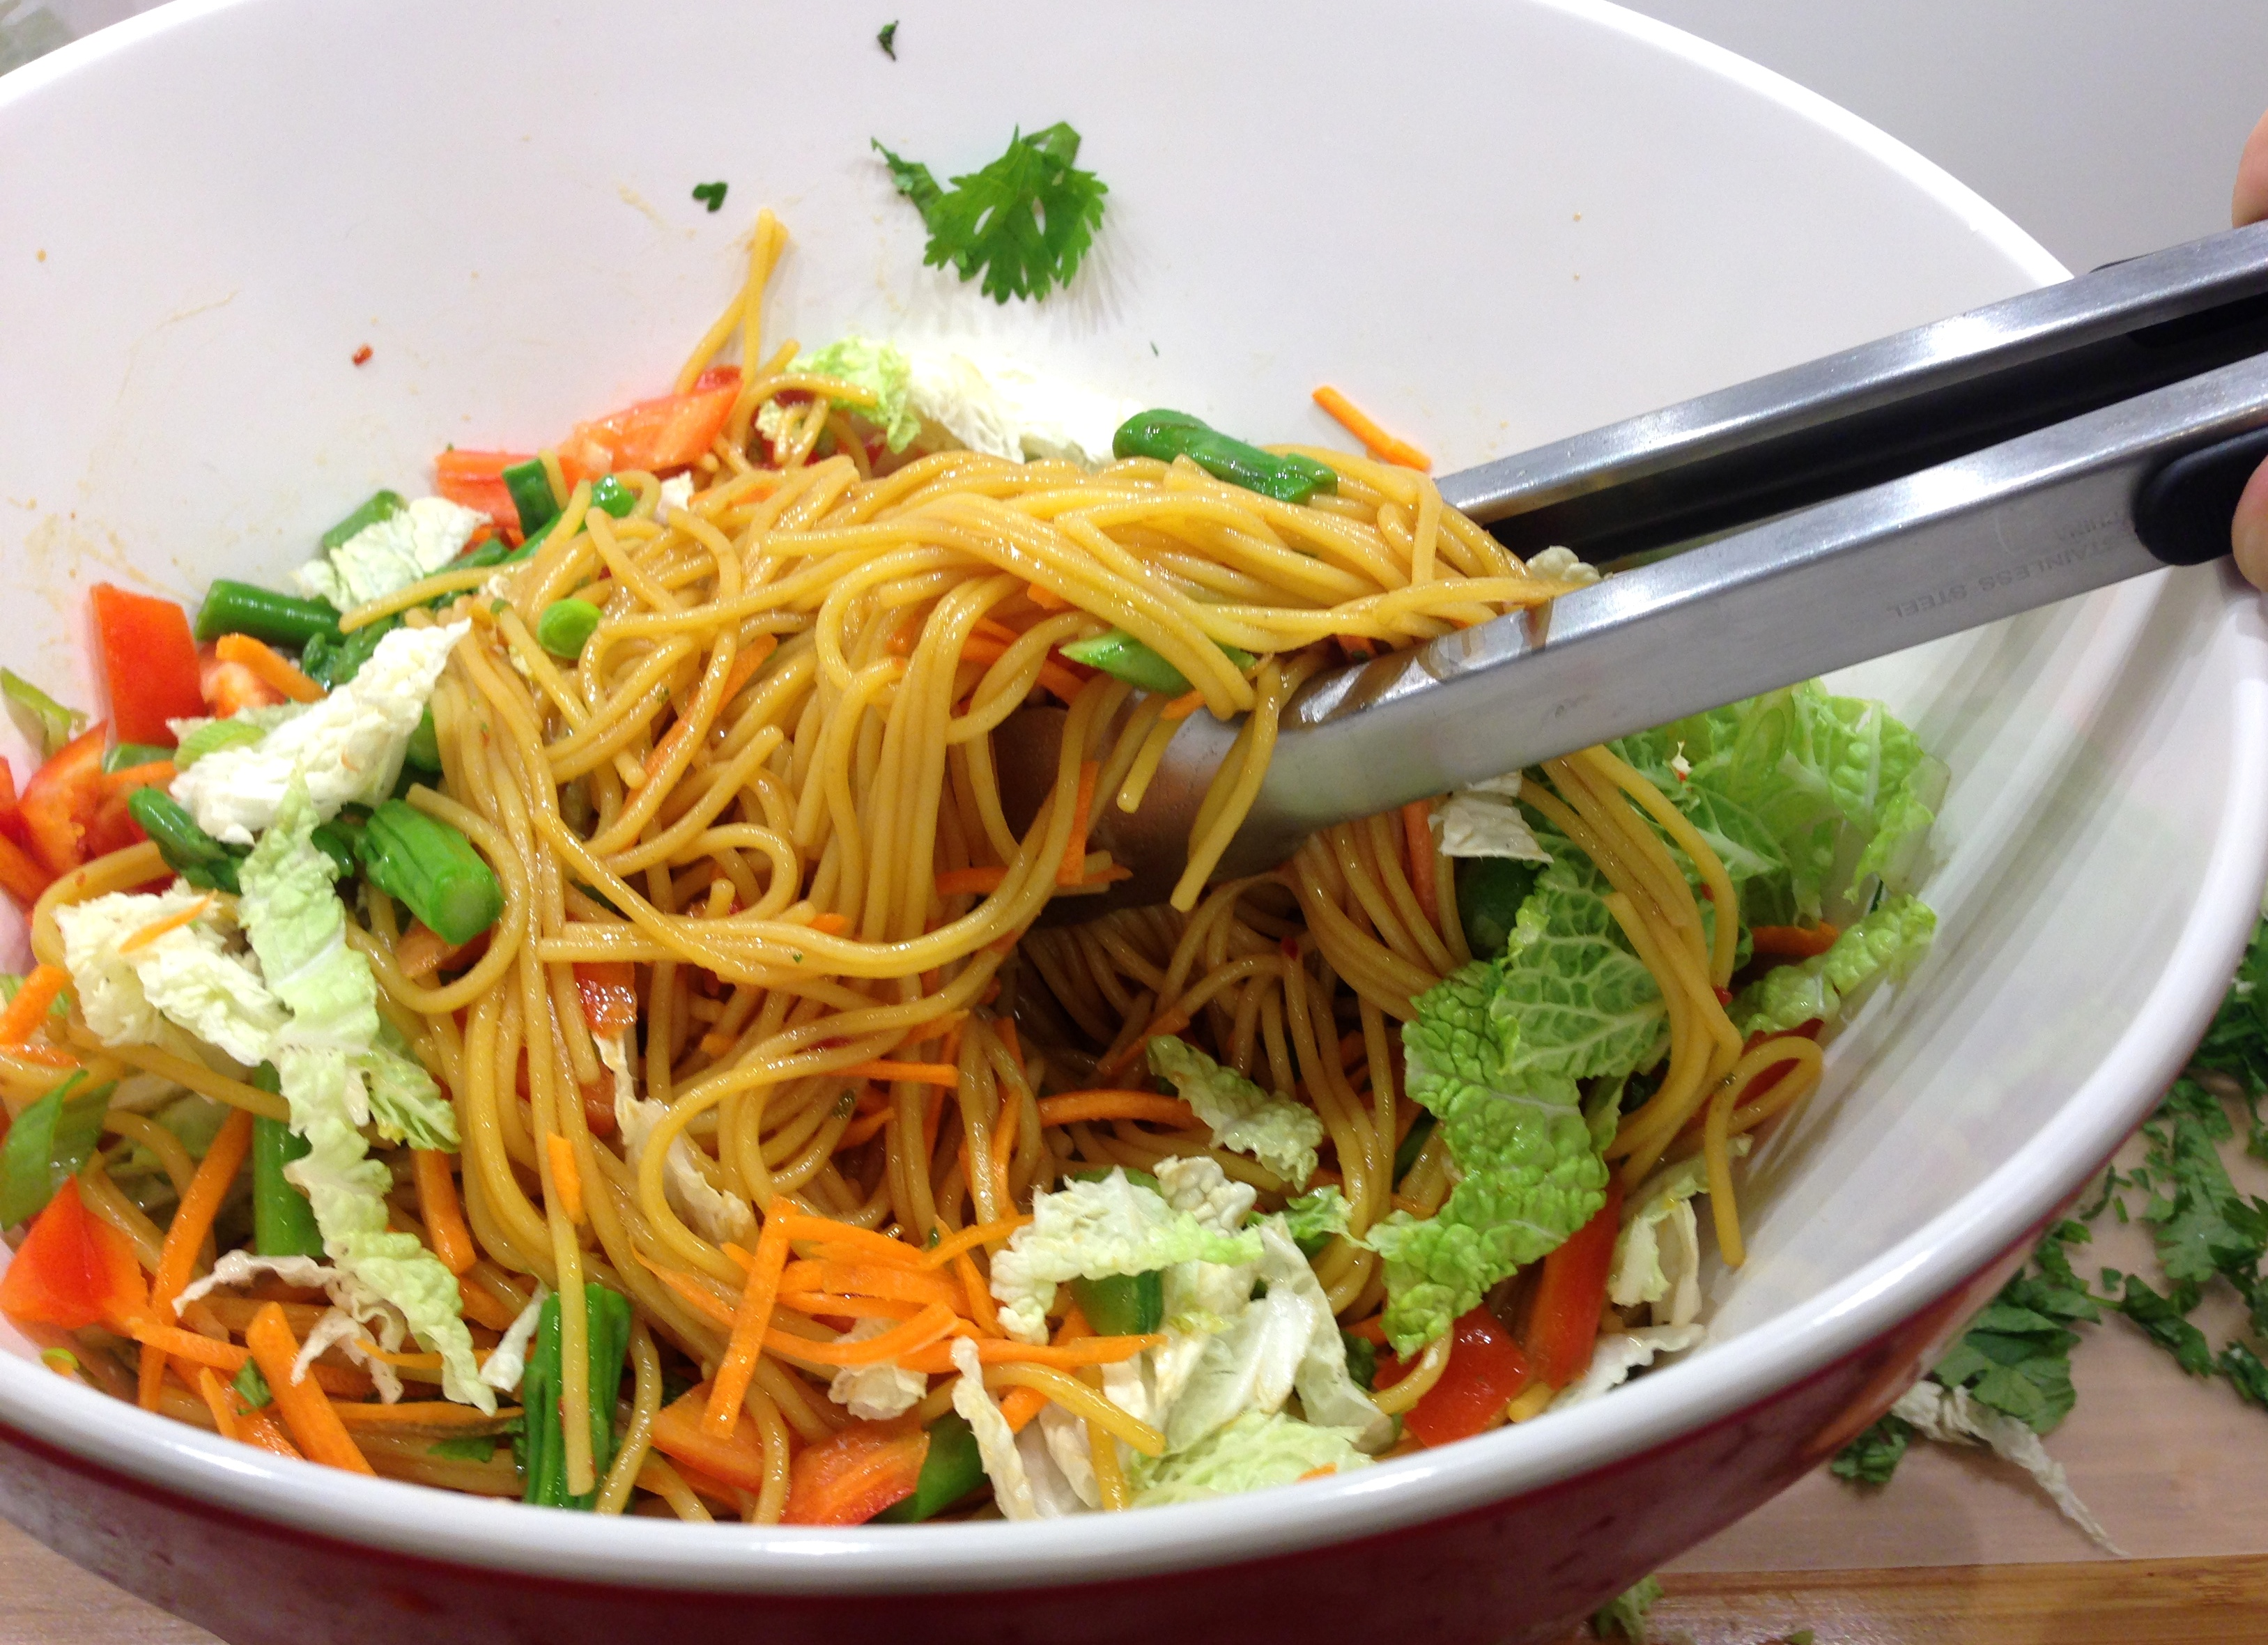 Toss veggies and noodles